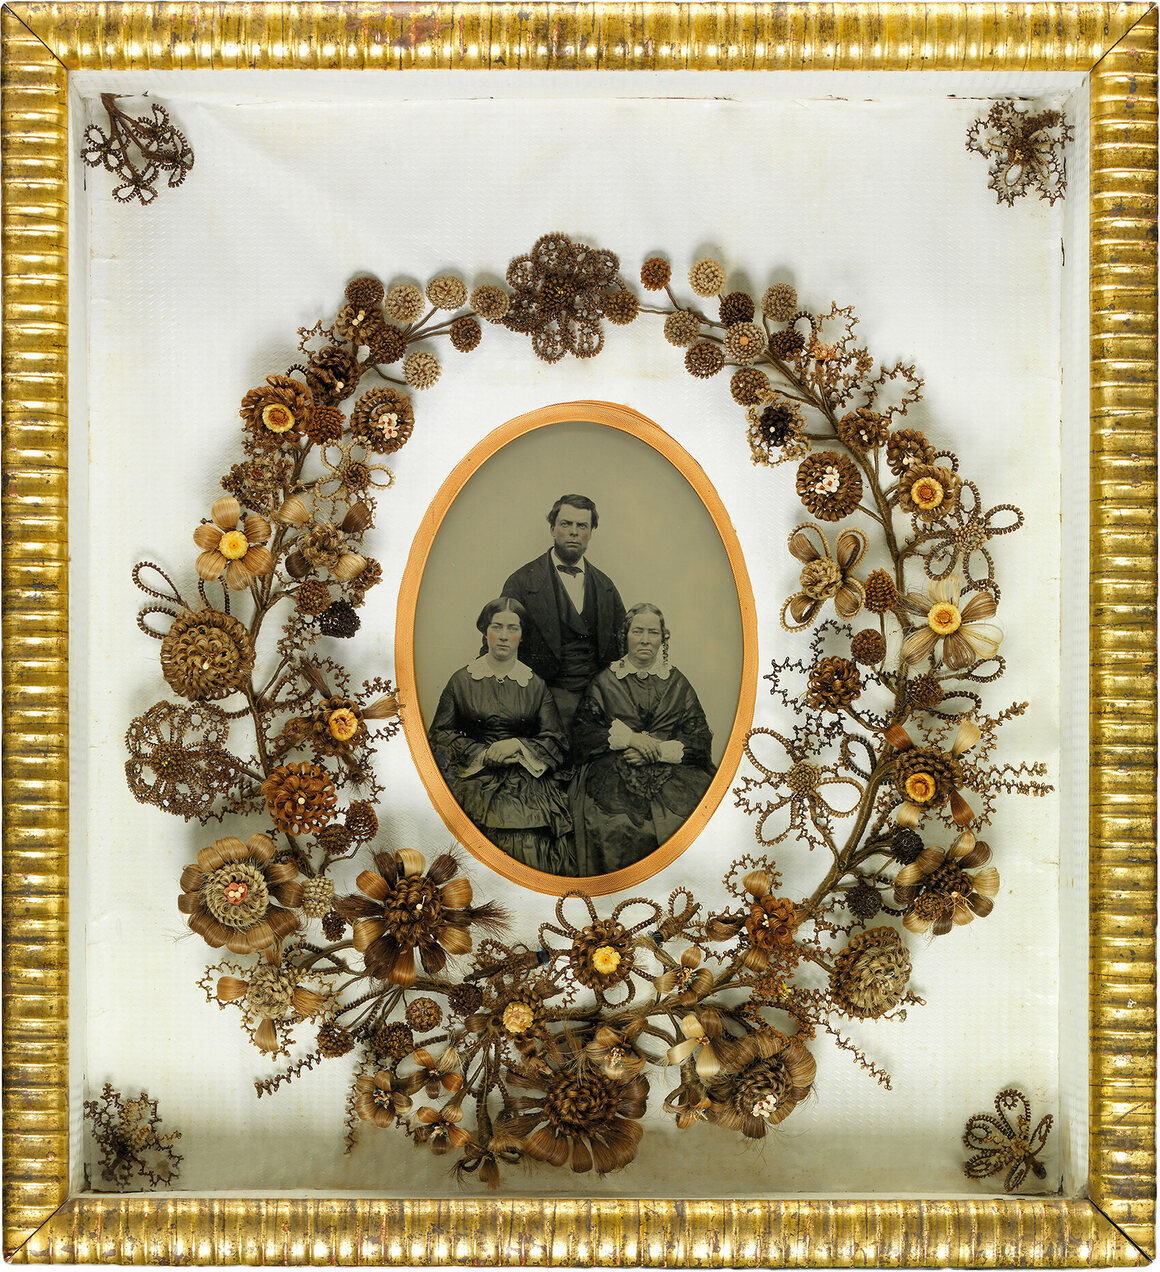 Wreath surrounding an ambrotype, made from wood, glass, ambrotype, wire, straw flowers, paper, and human hair using gimp work, mid-19th century.